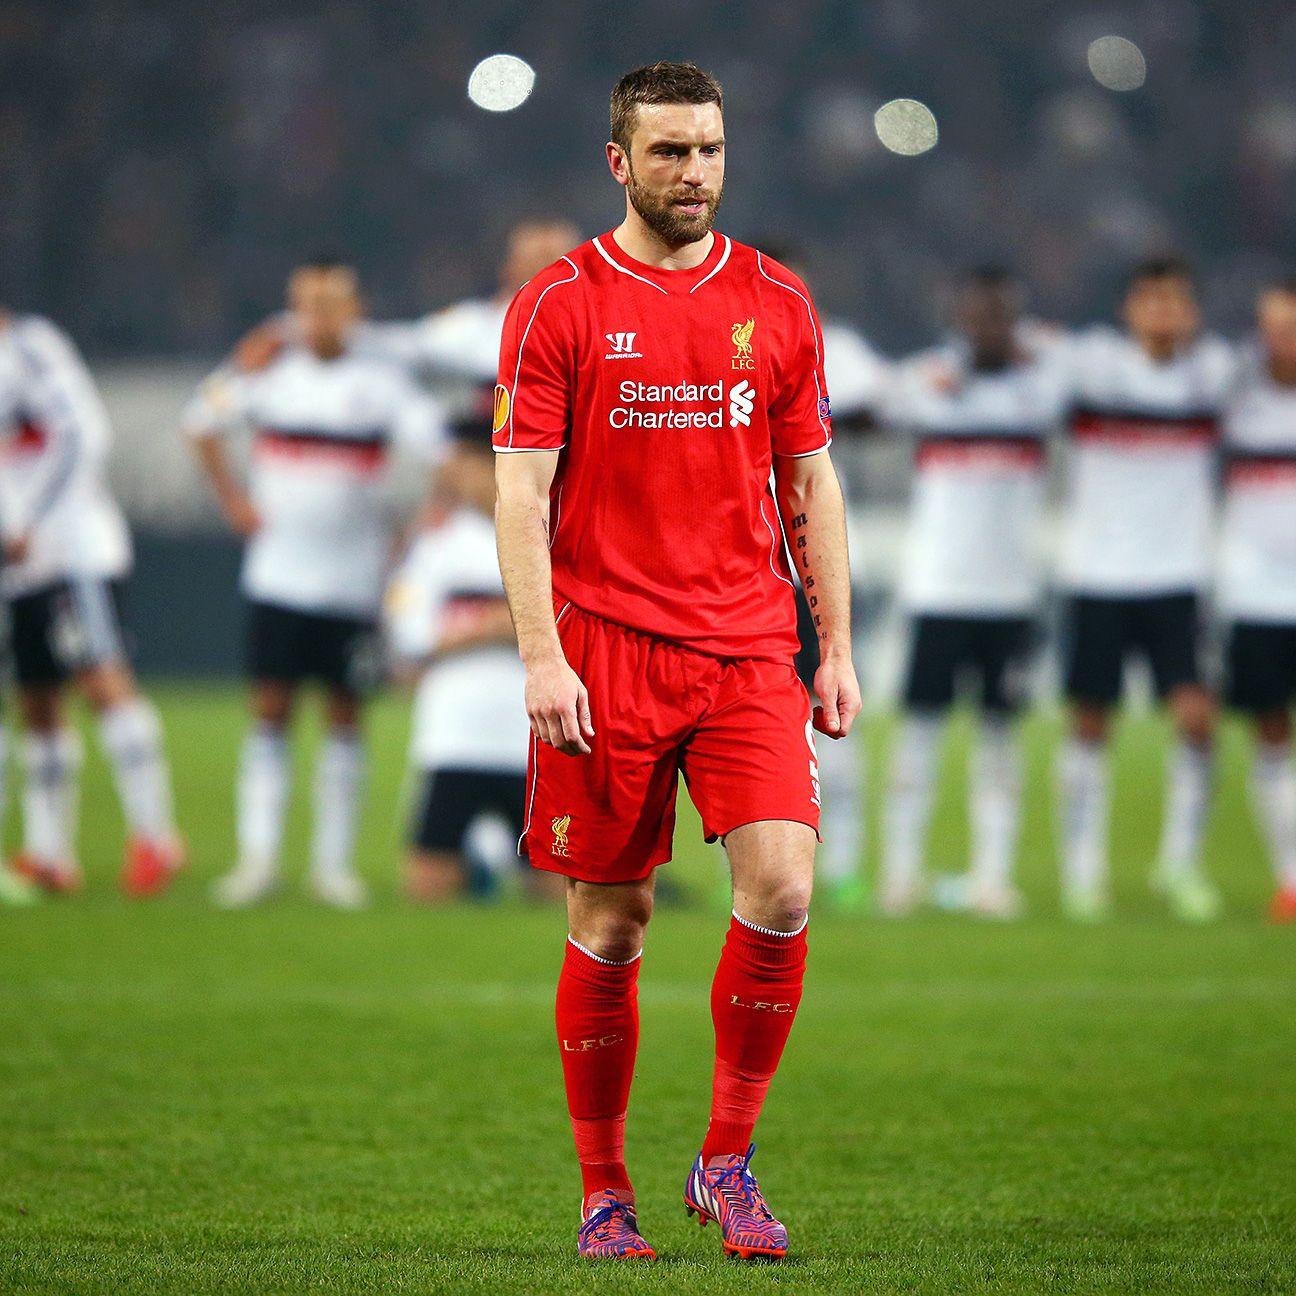 Thursday night's late show in Istanbul could exact a heavy toll on Liverpool come the second half on Sunday.